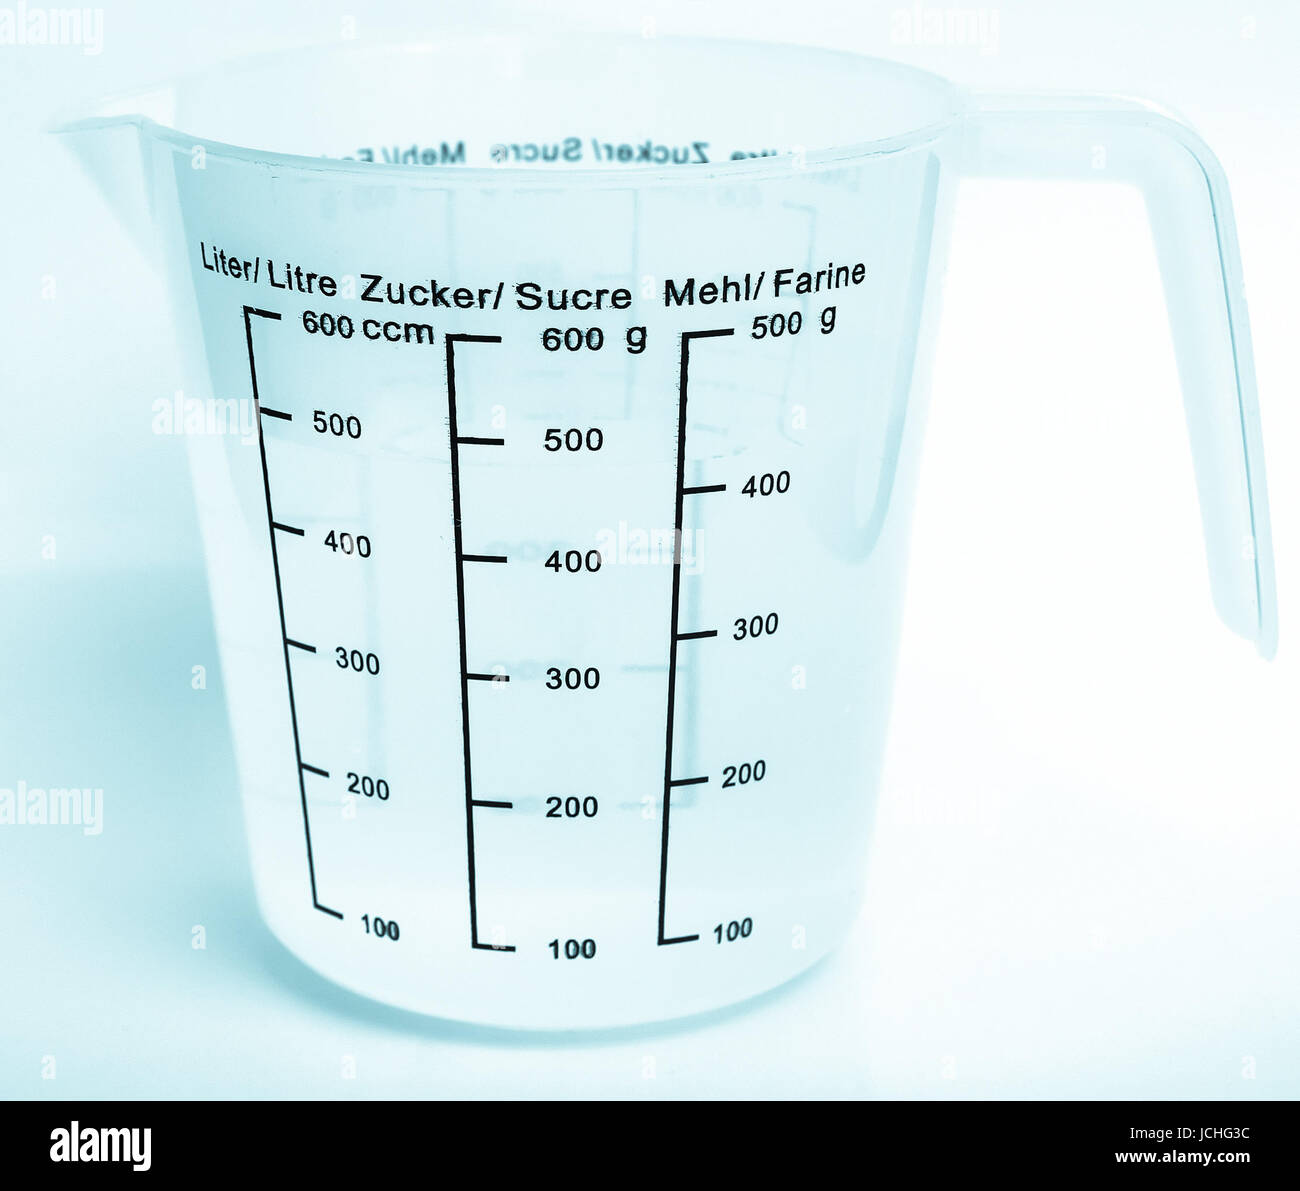 Measuring cup with metric scales for water, sugar and flour - cool cyanotype - Stock Image